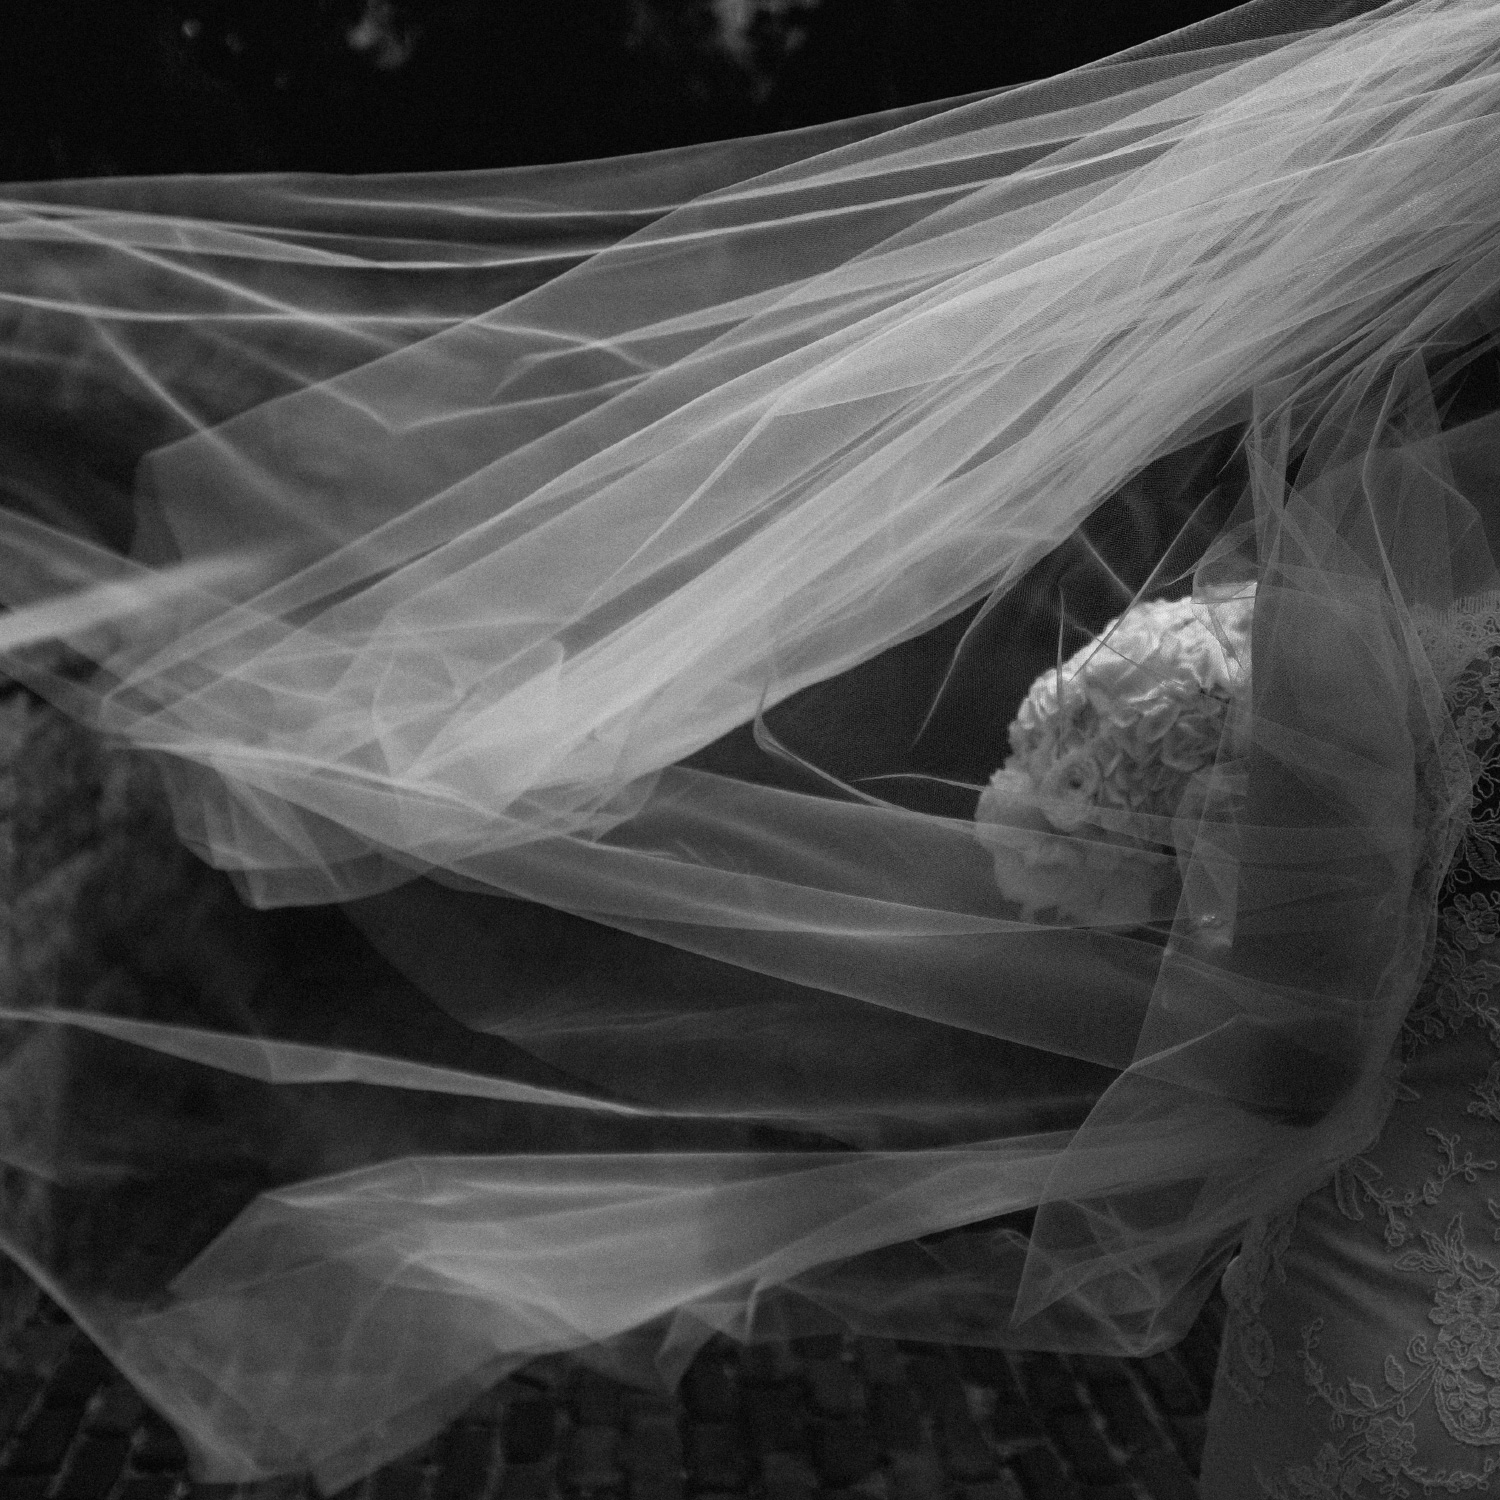 Fuji X Wedding Photography: Fuji X100t / A Wedding Photographers Review